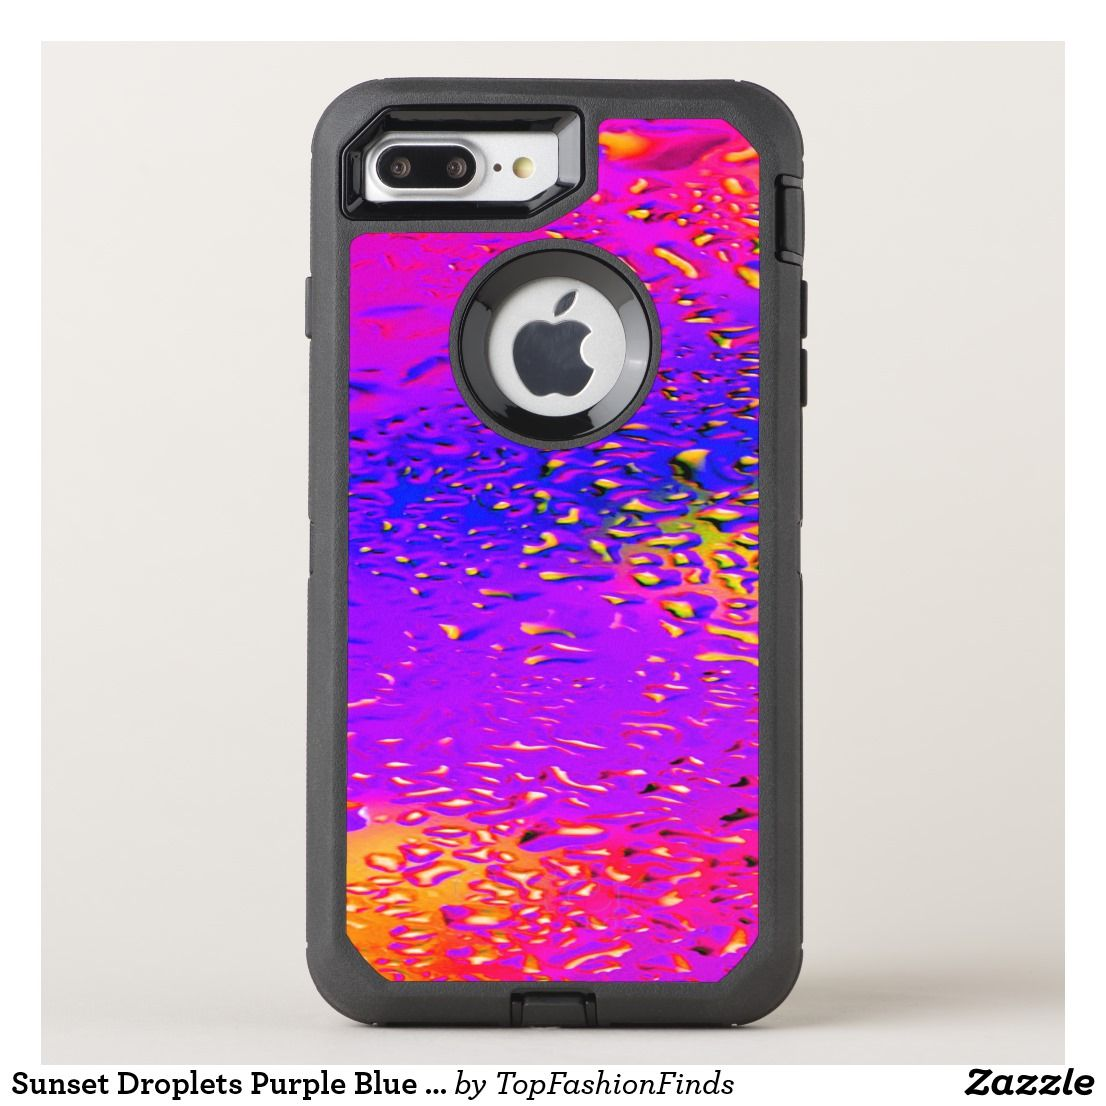 Sunset Droplets Purple Blue Pink Otterbox Iphone Case Zazzle Com Iphone Cases Otterbox Case Iphone